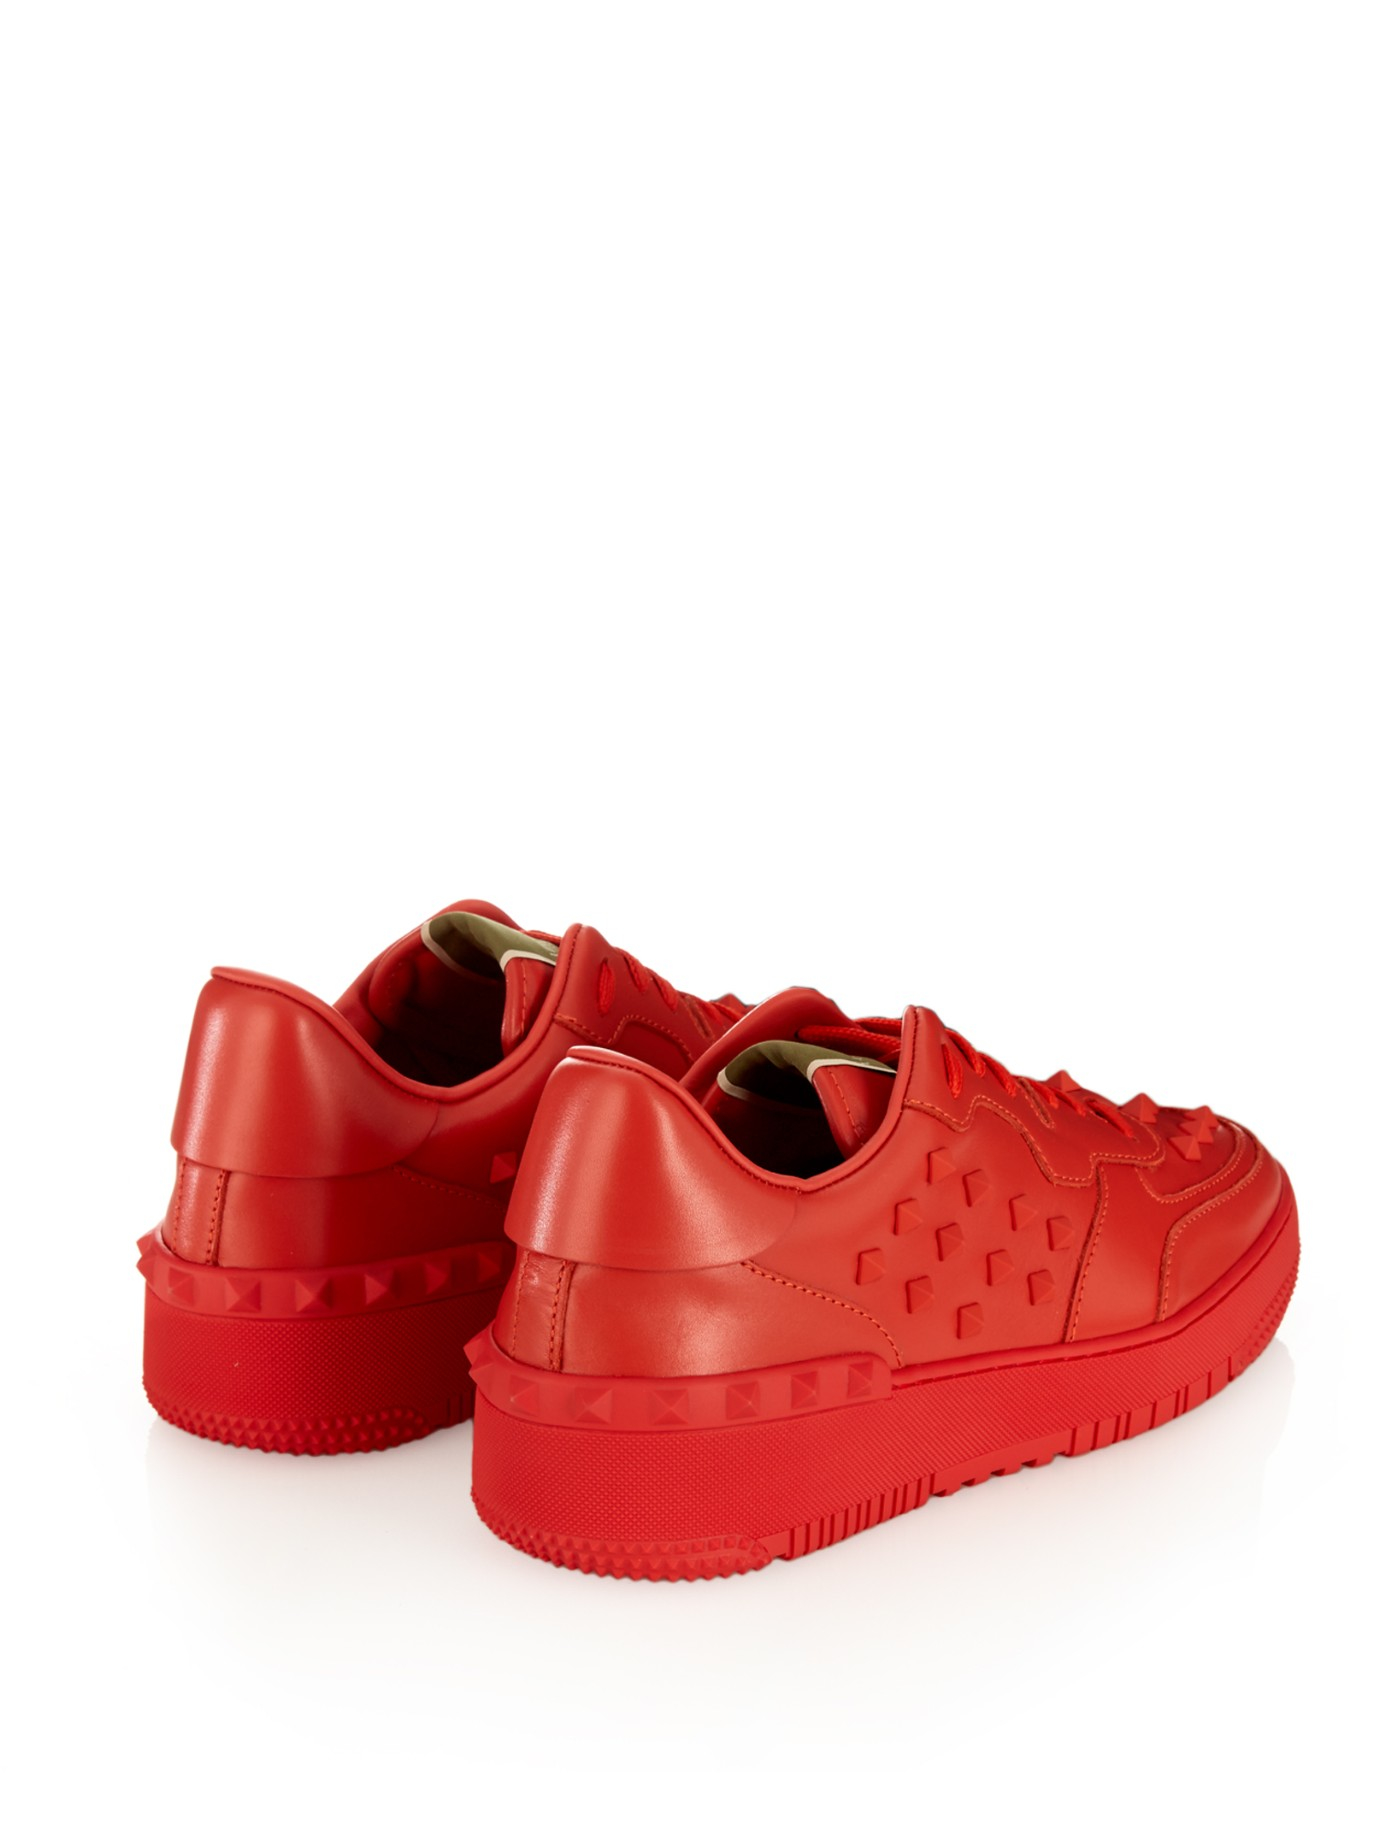 b6383c8dc9ef Gallery. Previously sold at  MATCHESFASHION.COM · Men s Valentino Rockstud  ...